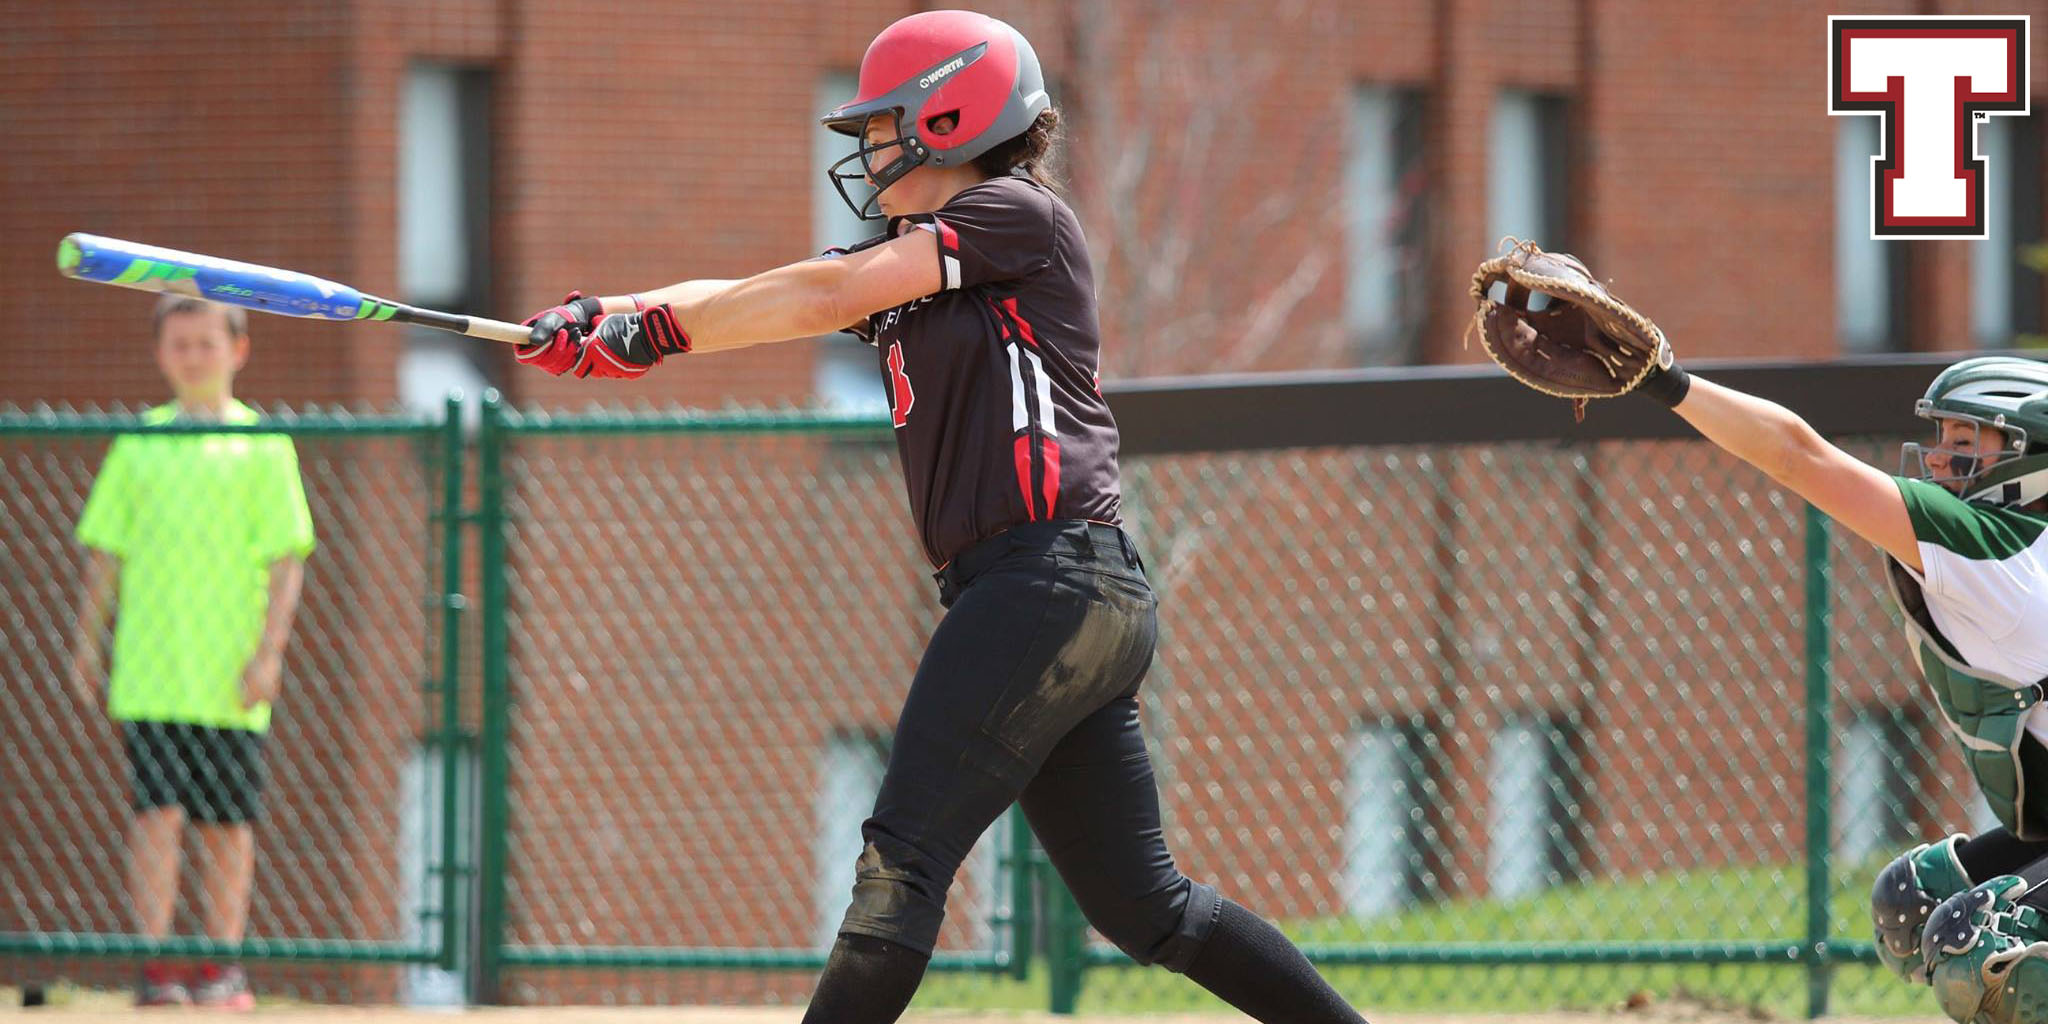 Softball Takes Two at Lyndon, 12-1, 5-1